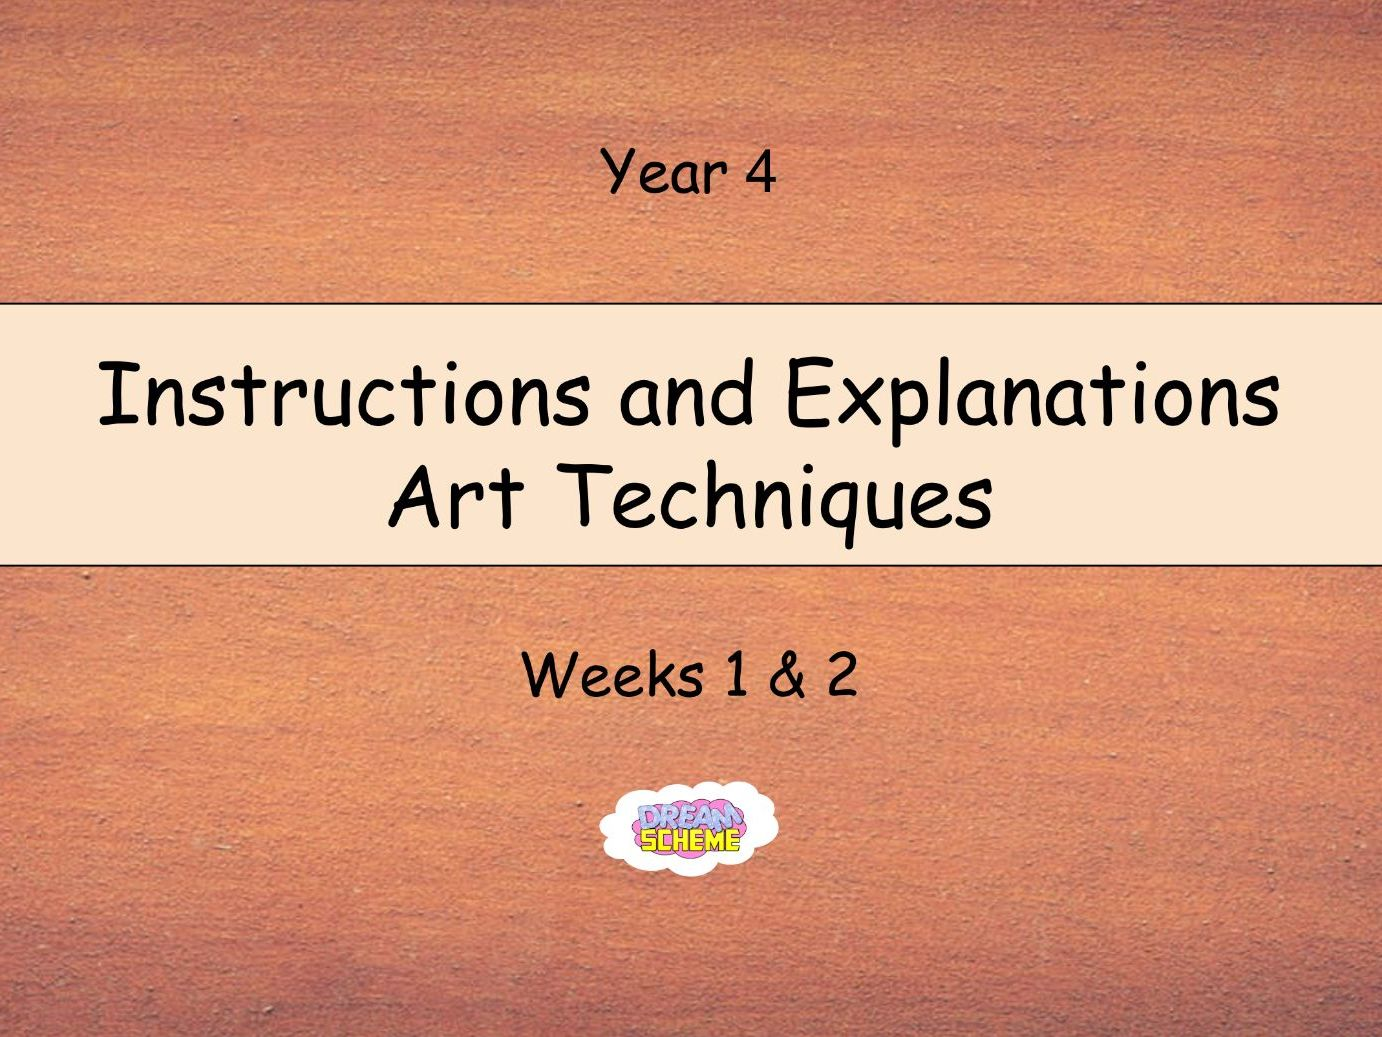 Year 4: Instructions and Explanations - Art Techniques (Complete 2-Week Unit)